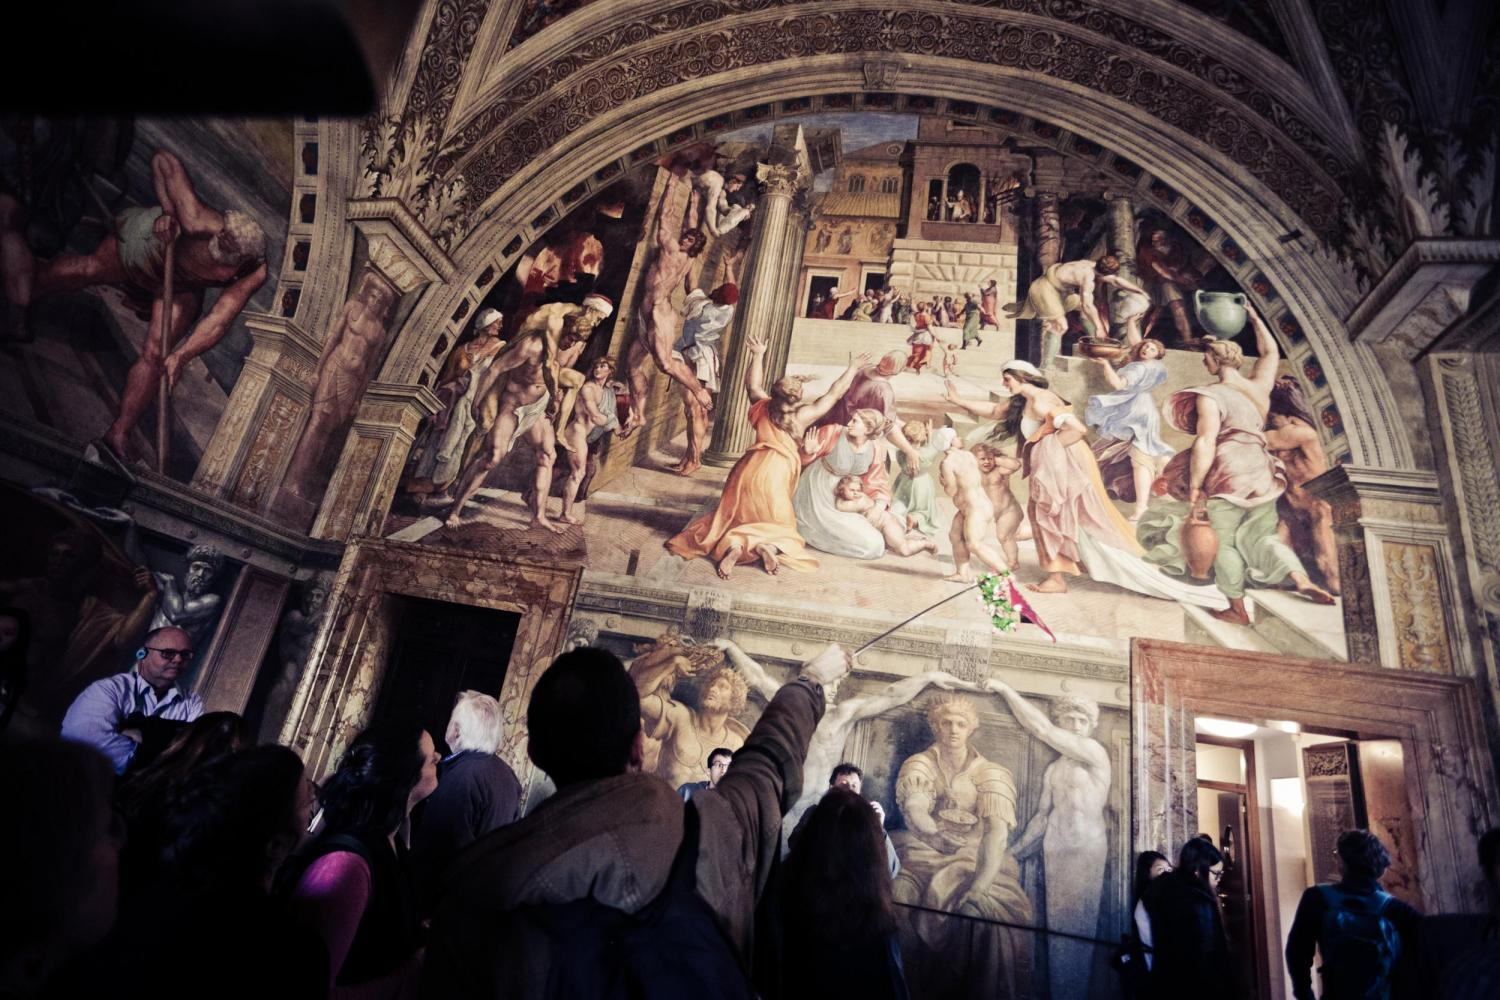 Vatican Museums, Sistine Chapel & St. Peter's Basilica Small Group Tour